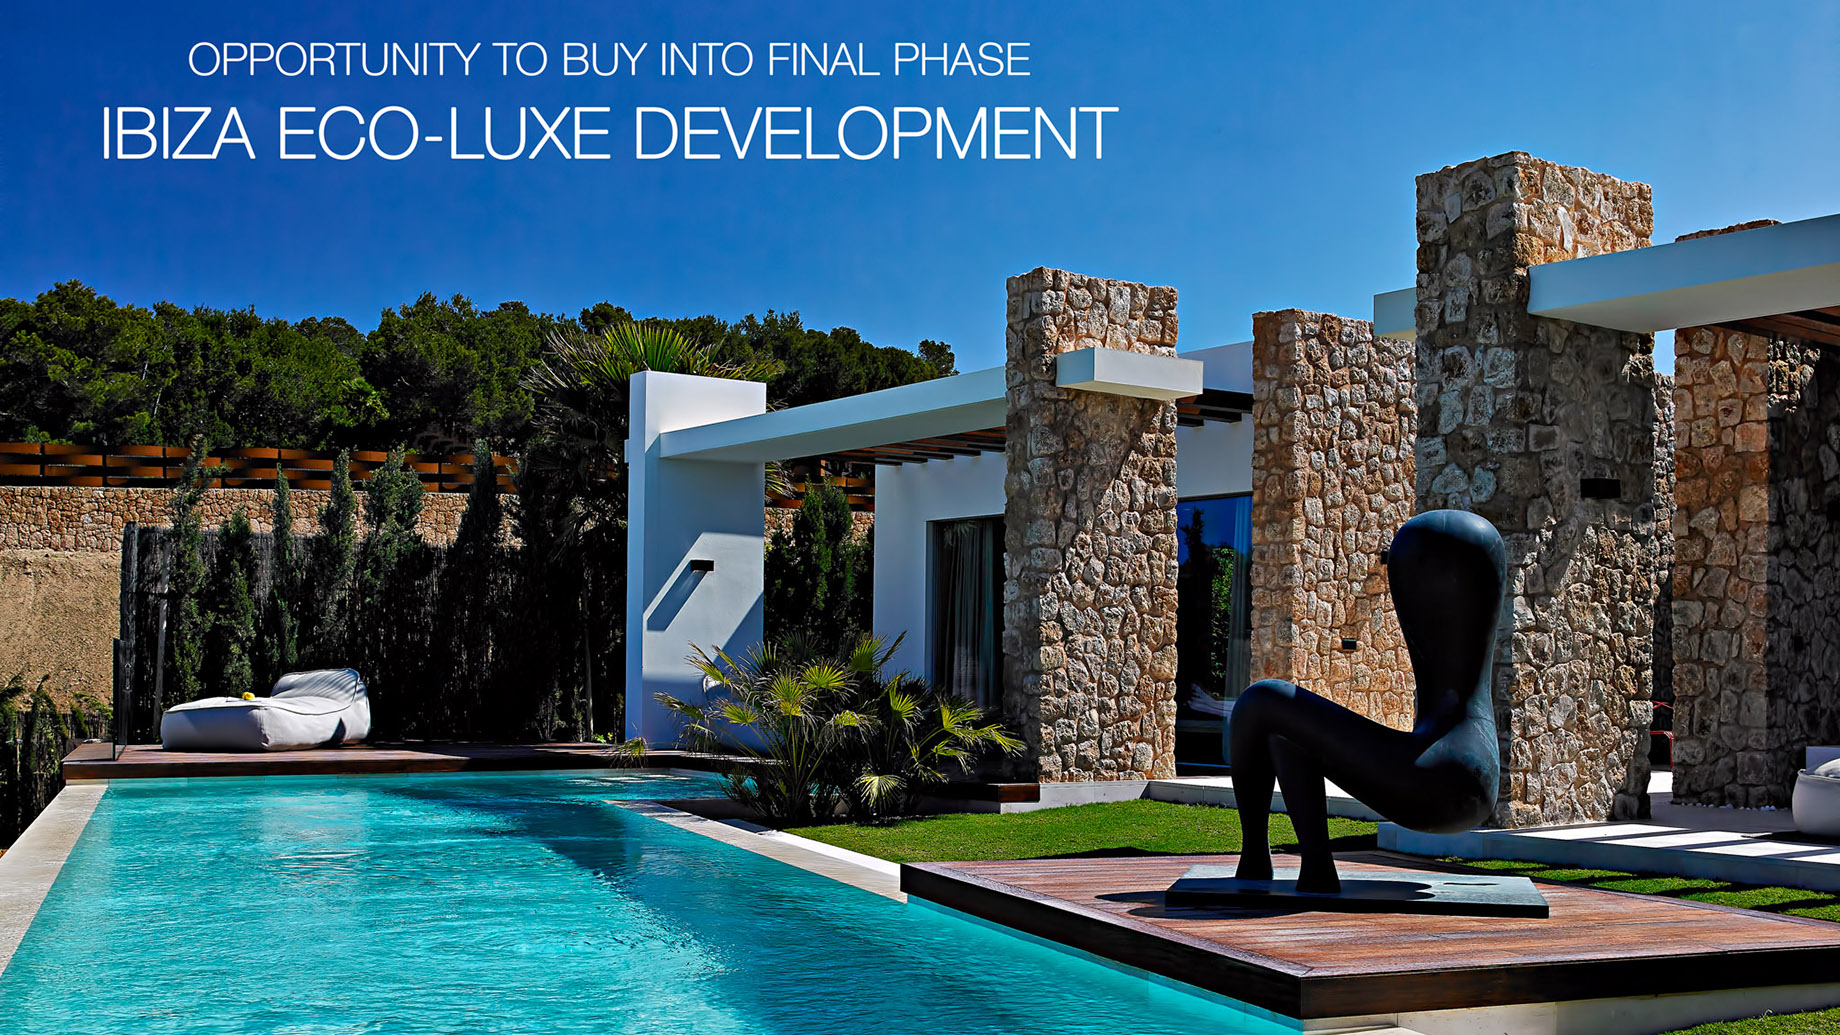 Calaconta Villas - Opportunity to Buy into Final Phase of Eco-Luxe Development in Ibiza